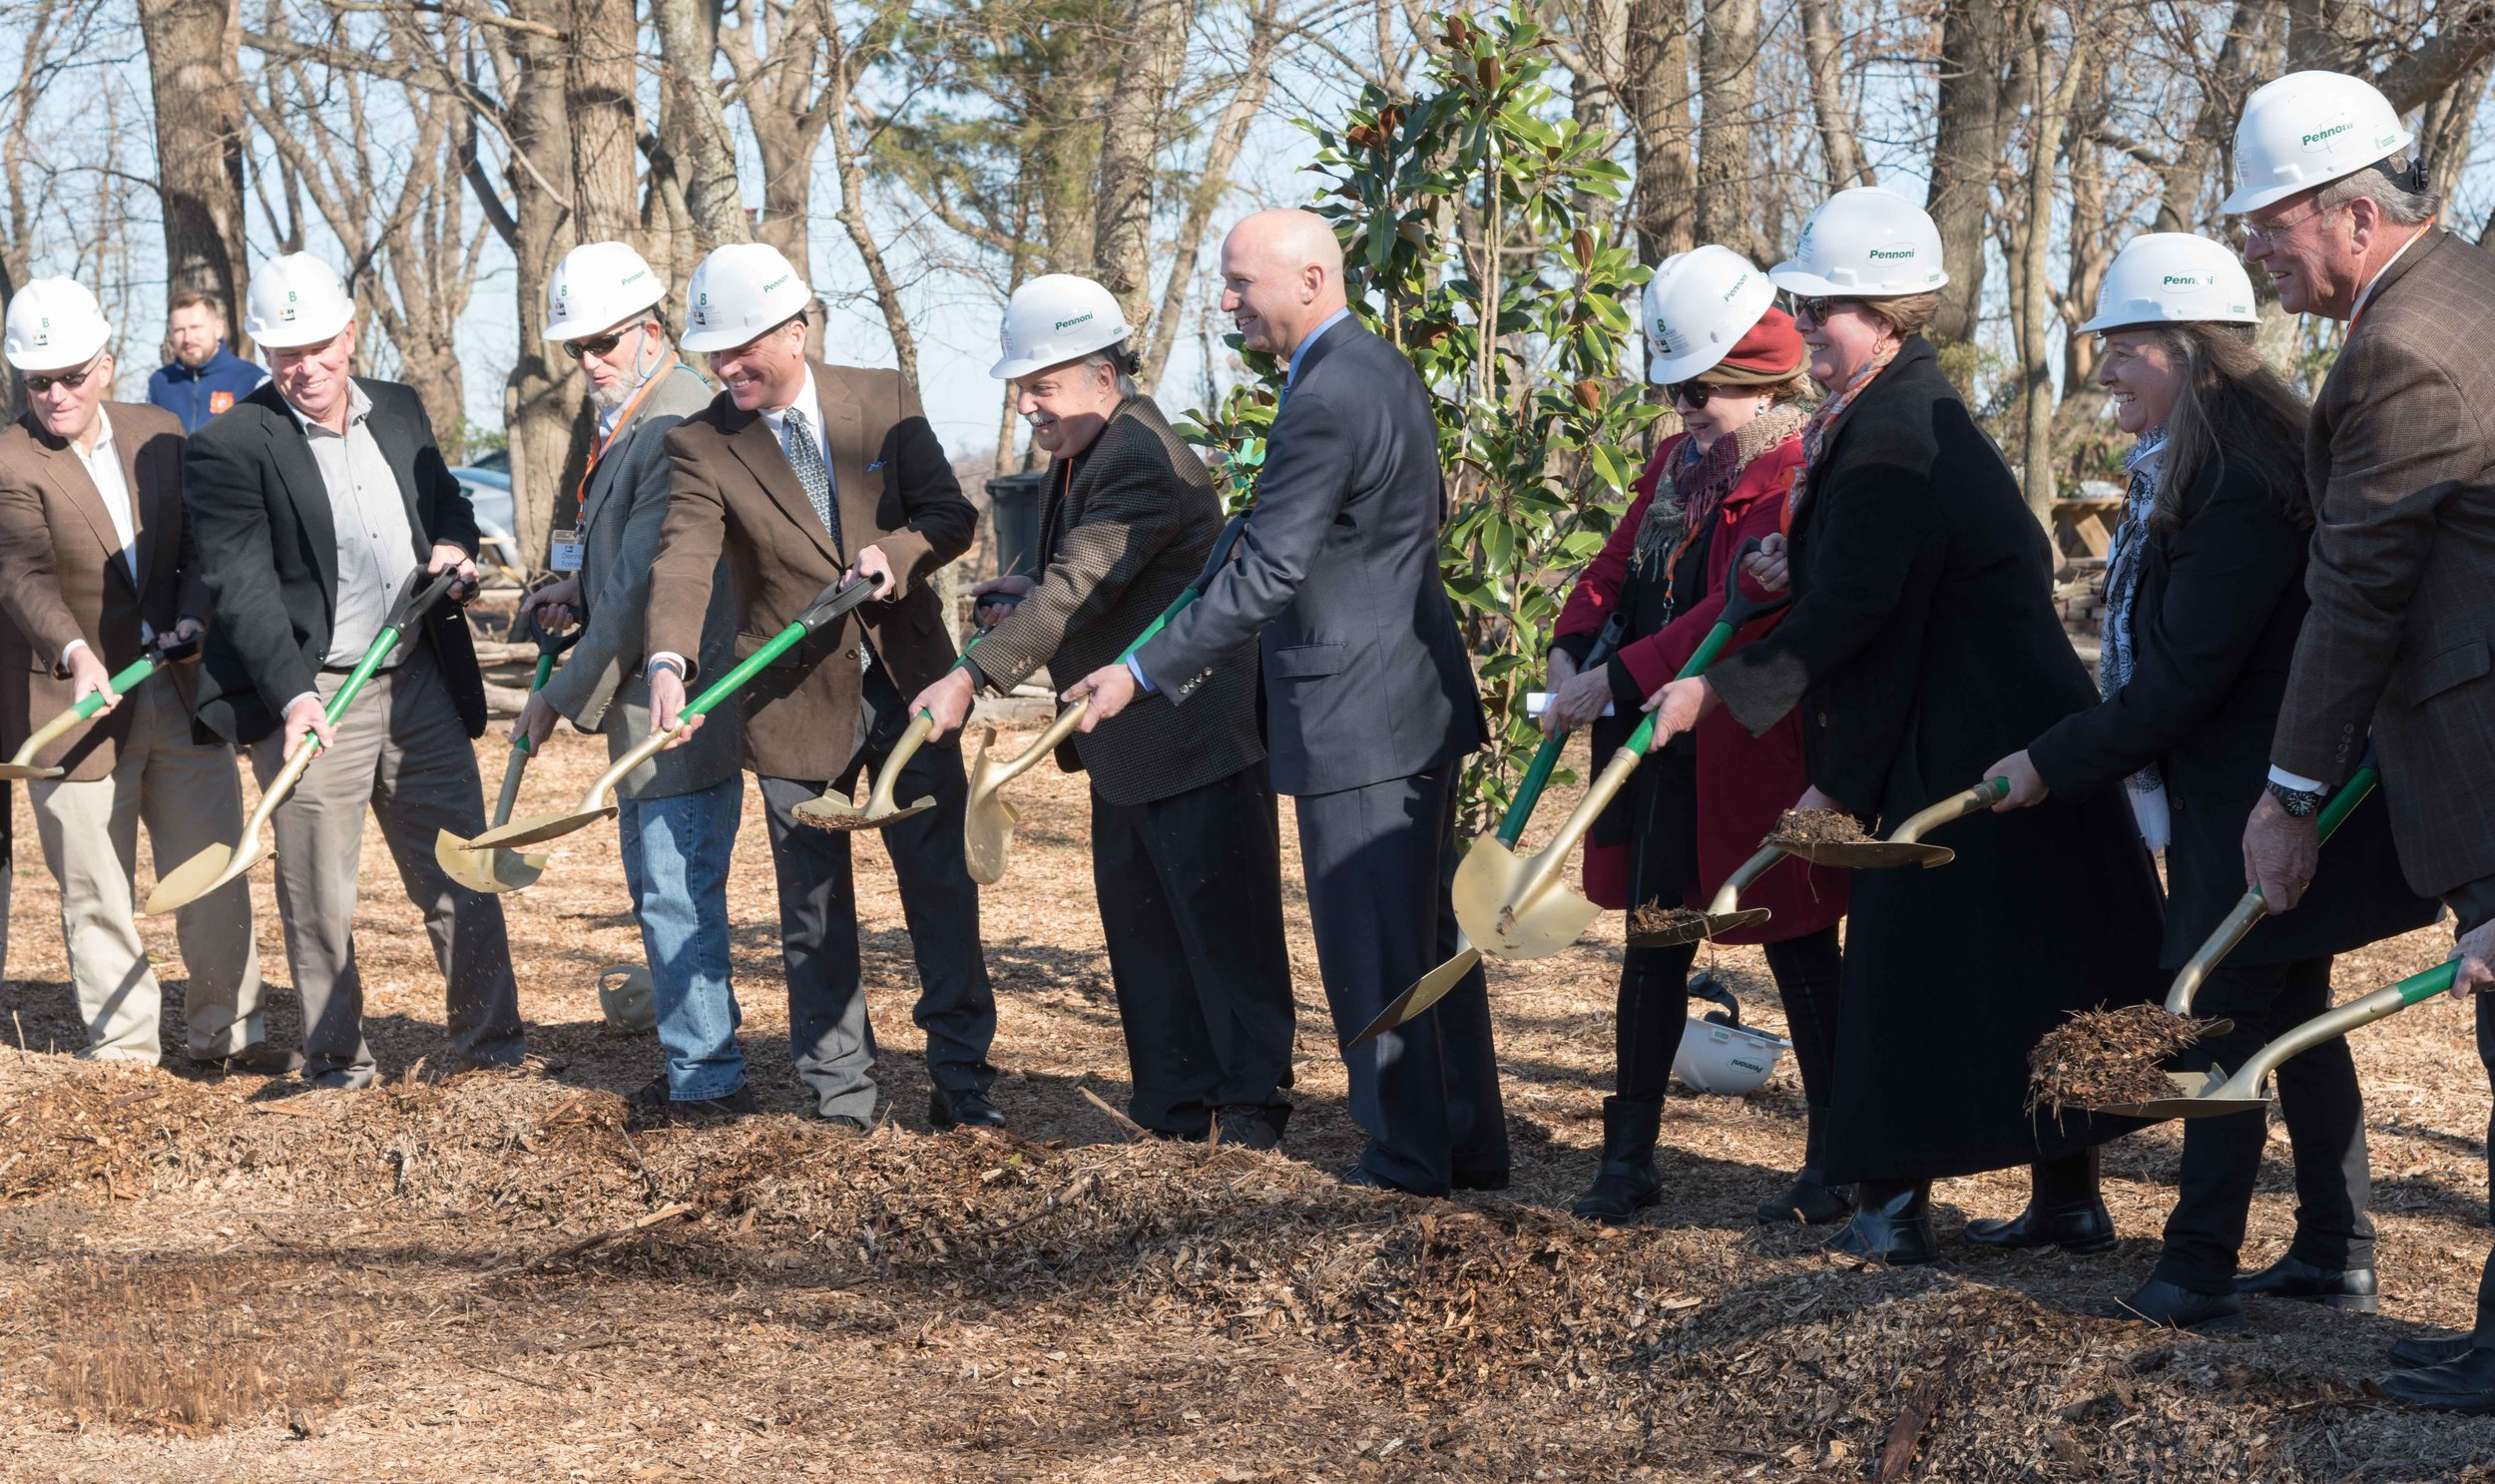 The governor and first lady, public officials, and DBG leaders all pitch in to break ground for the Delaware Botanic Gardens. Photos by Ray Bojarski